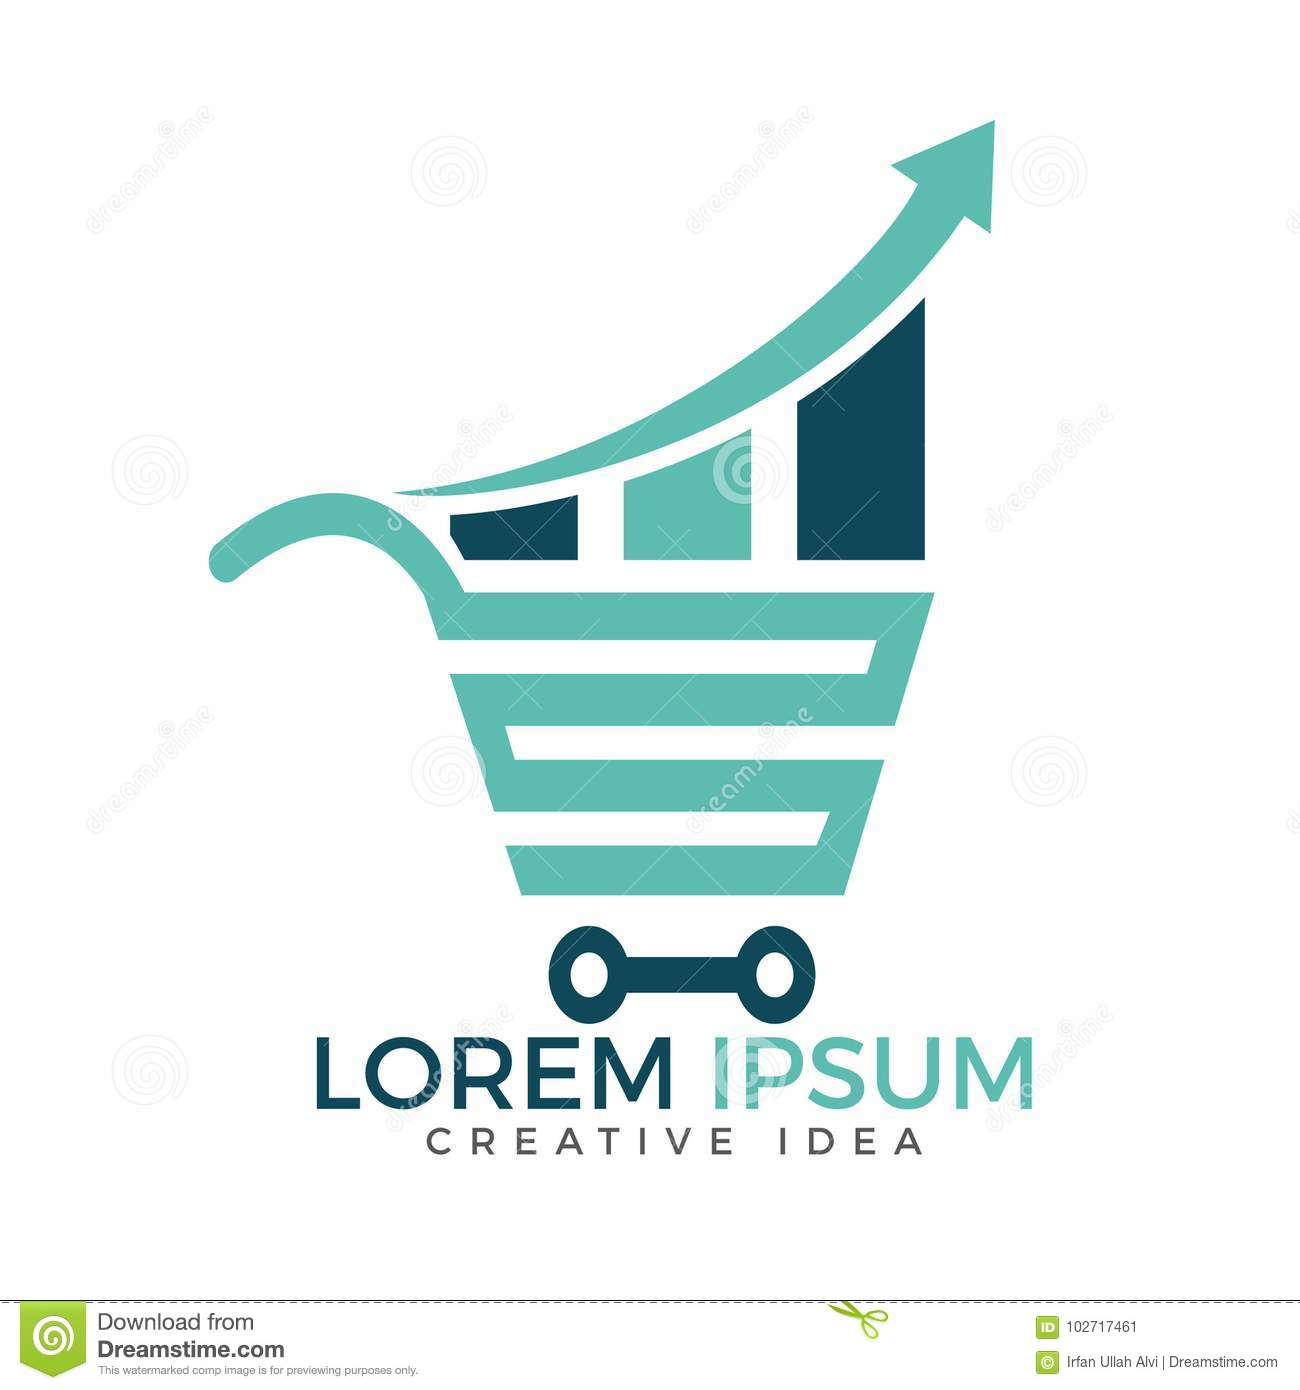 Shop Report Or Stats And Shopping Logo Design Element. Stock Vector ...